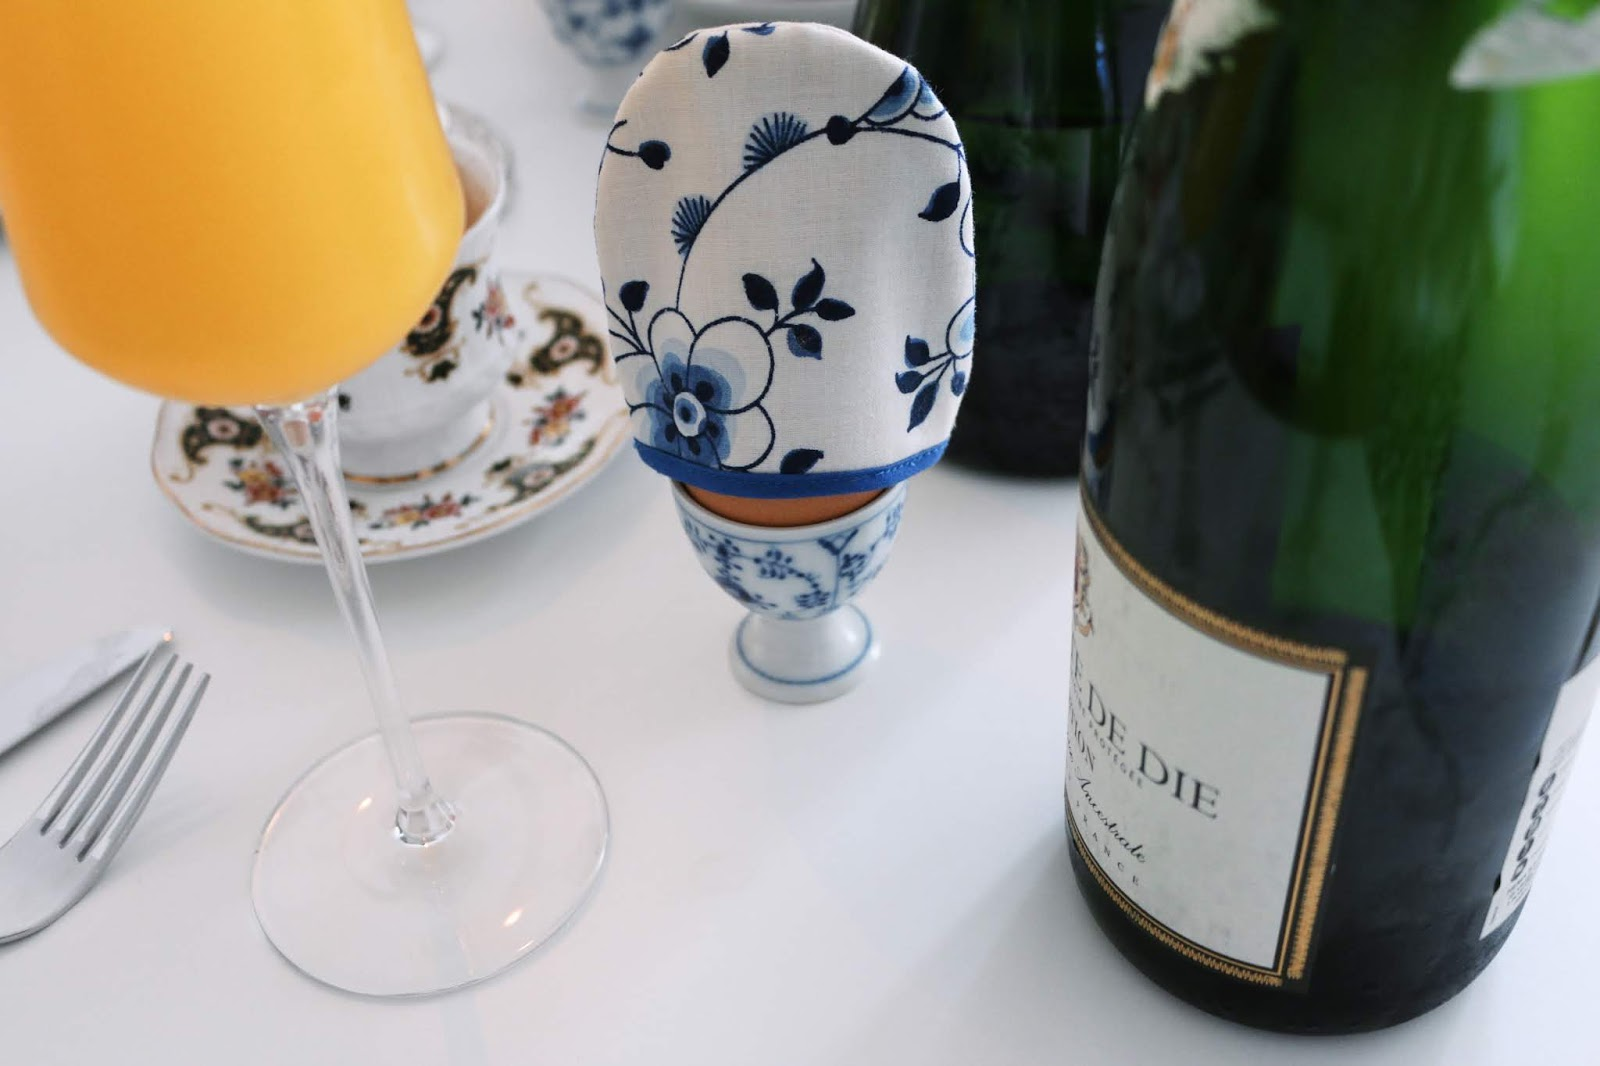 New years brunch with mimosas